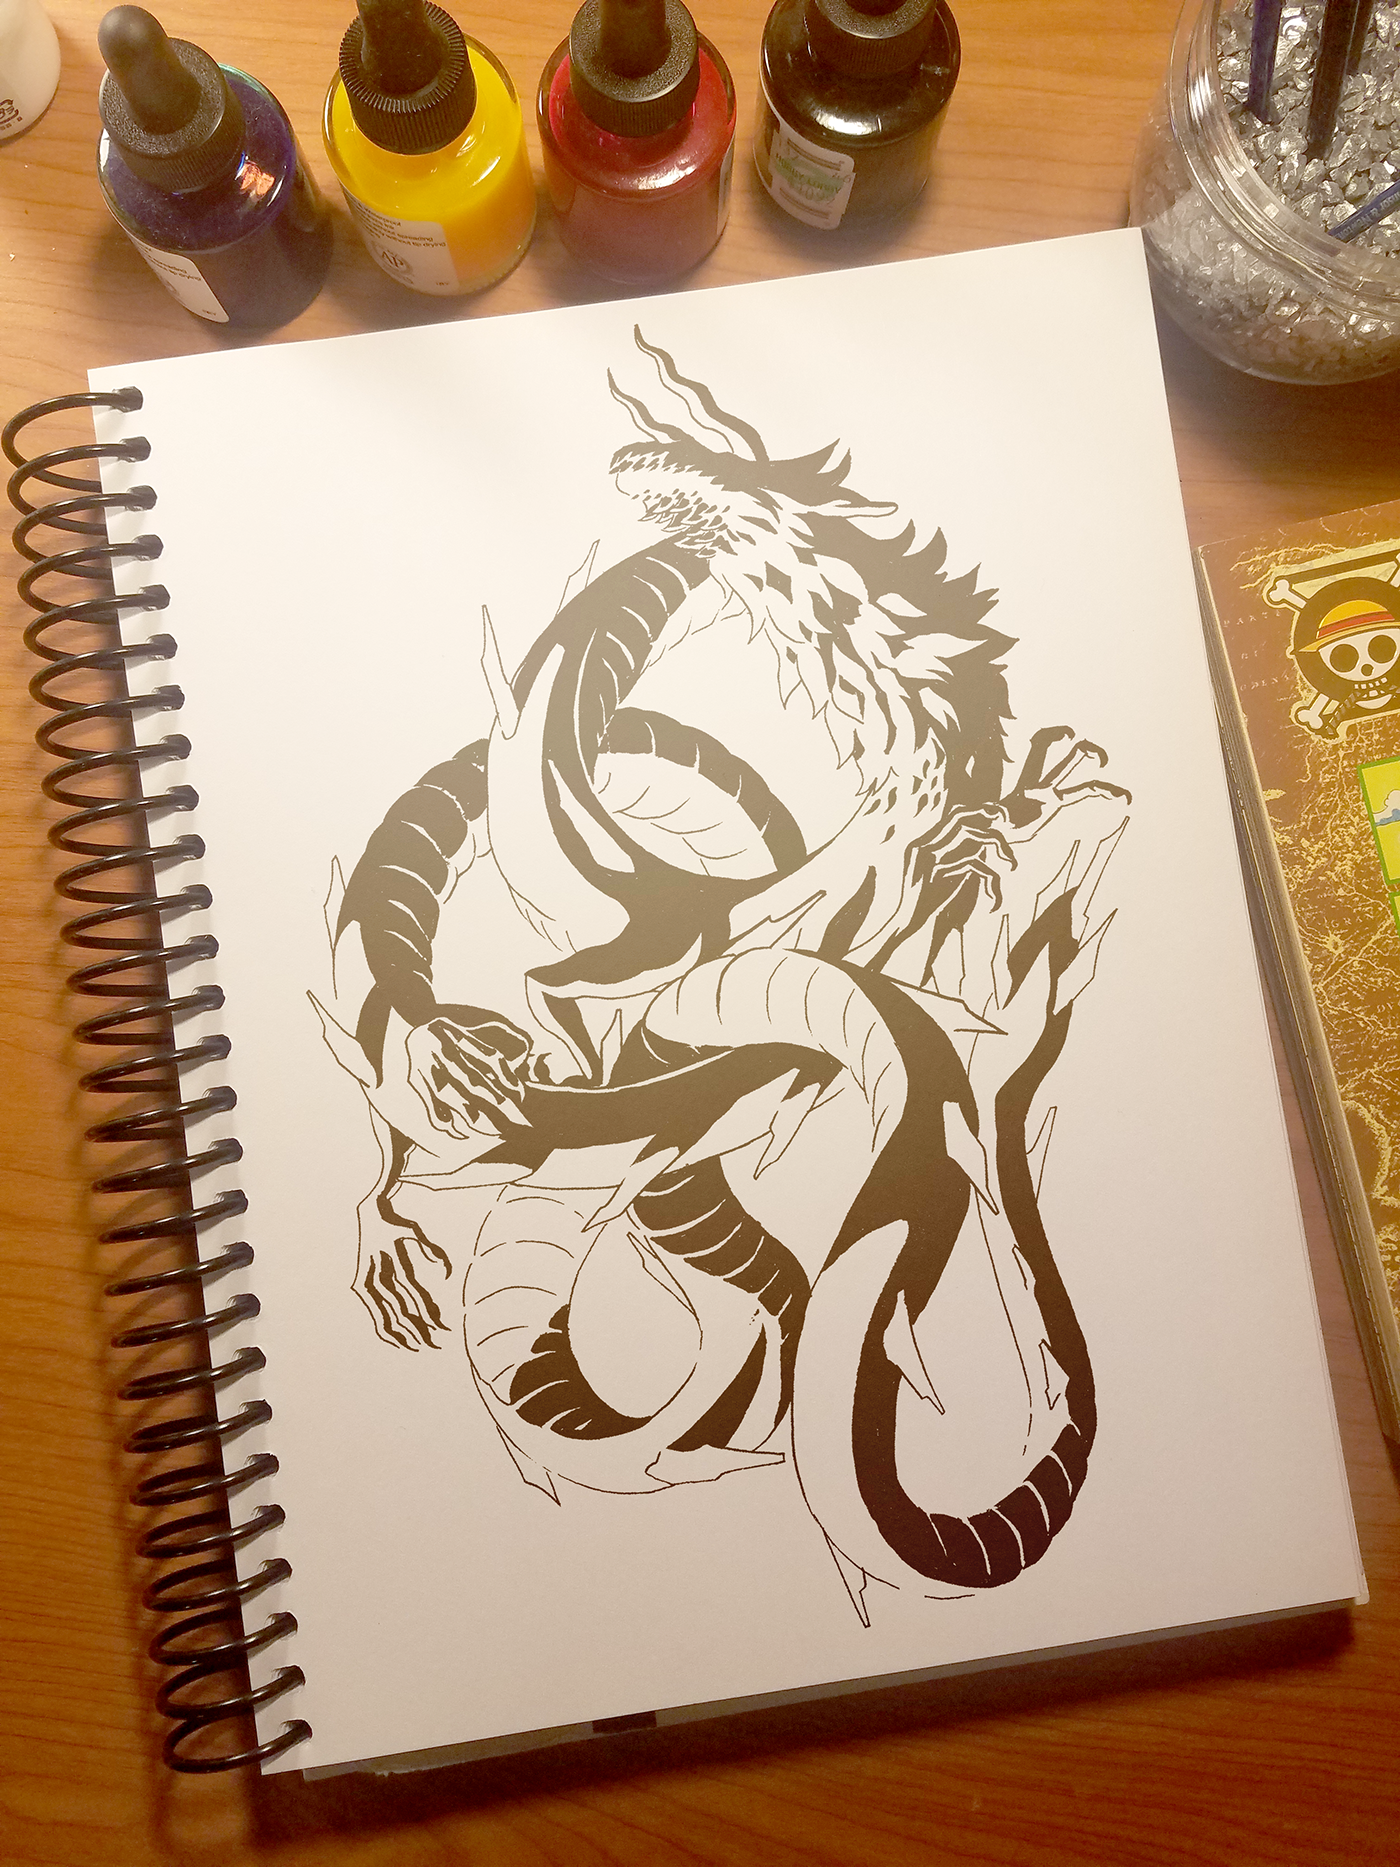 Linktober_Farosh_Ink.png